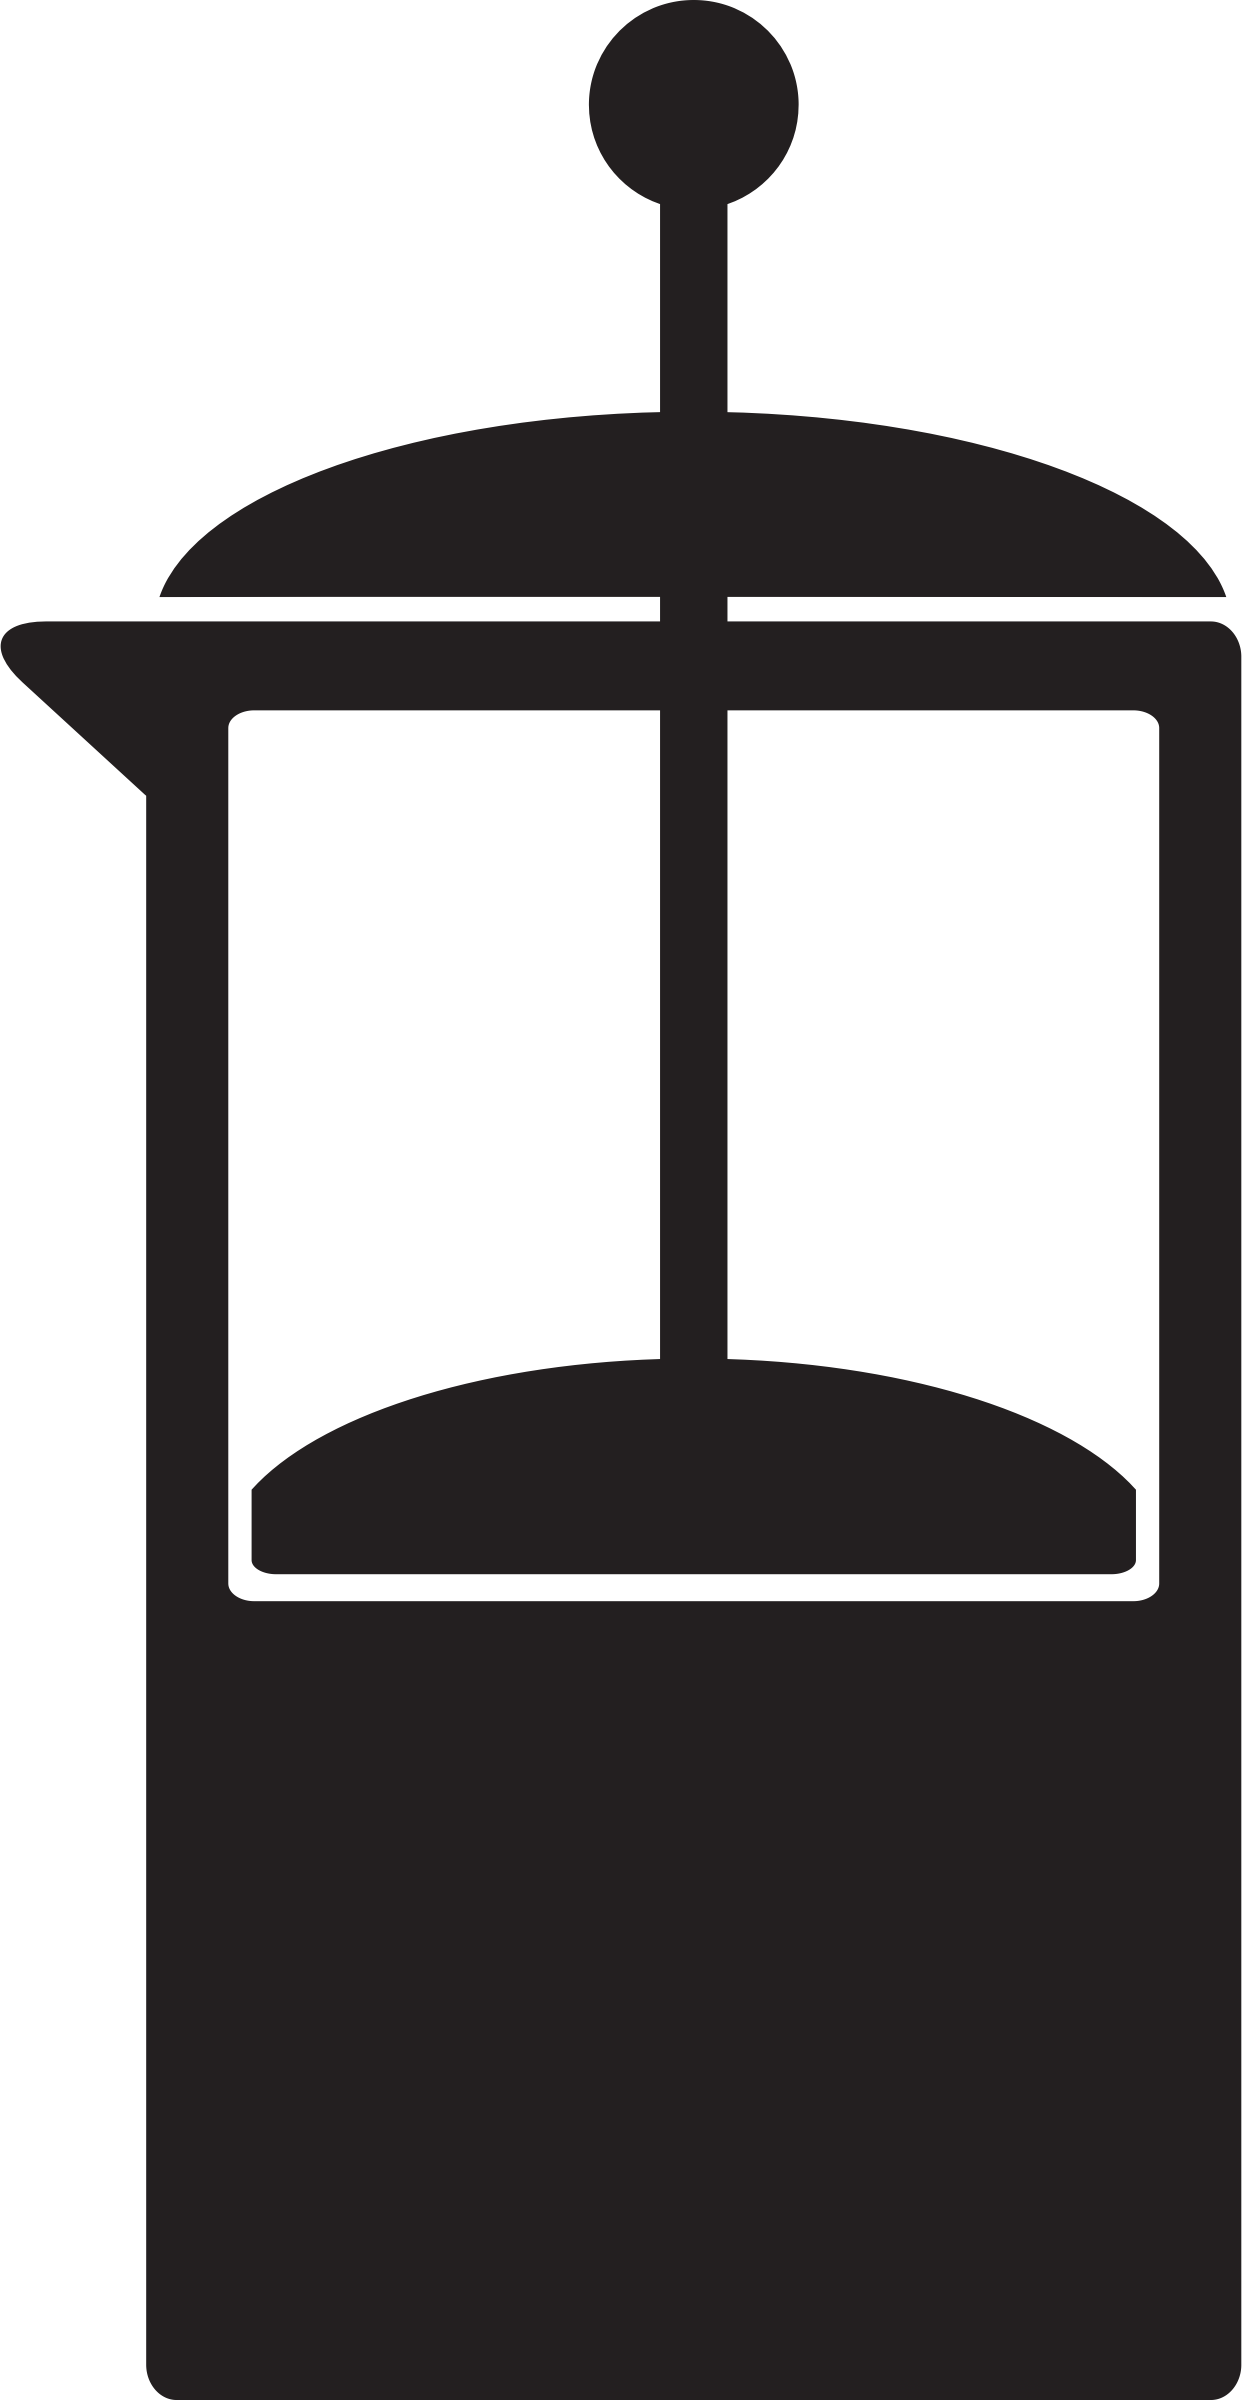 Icon coffee french press. Clipart kitchen black and white